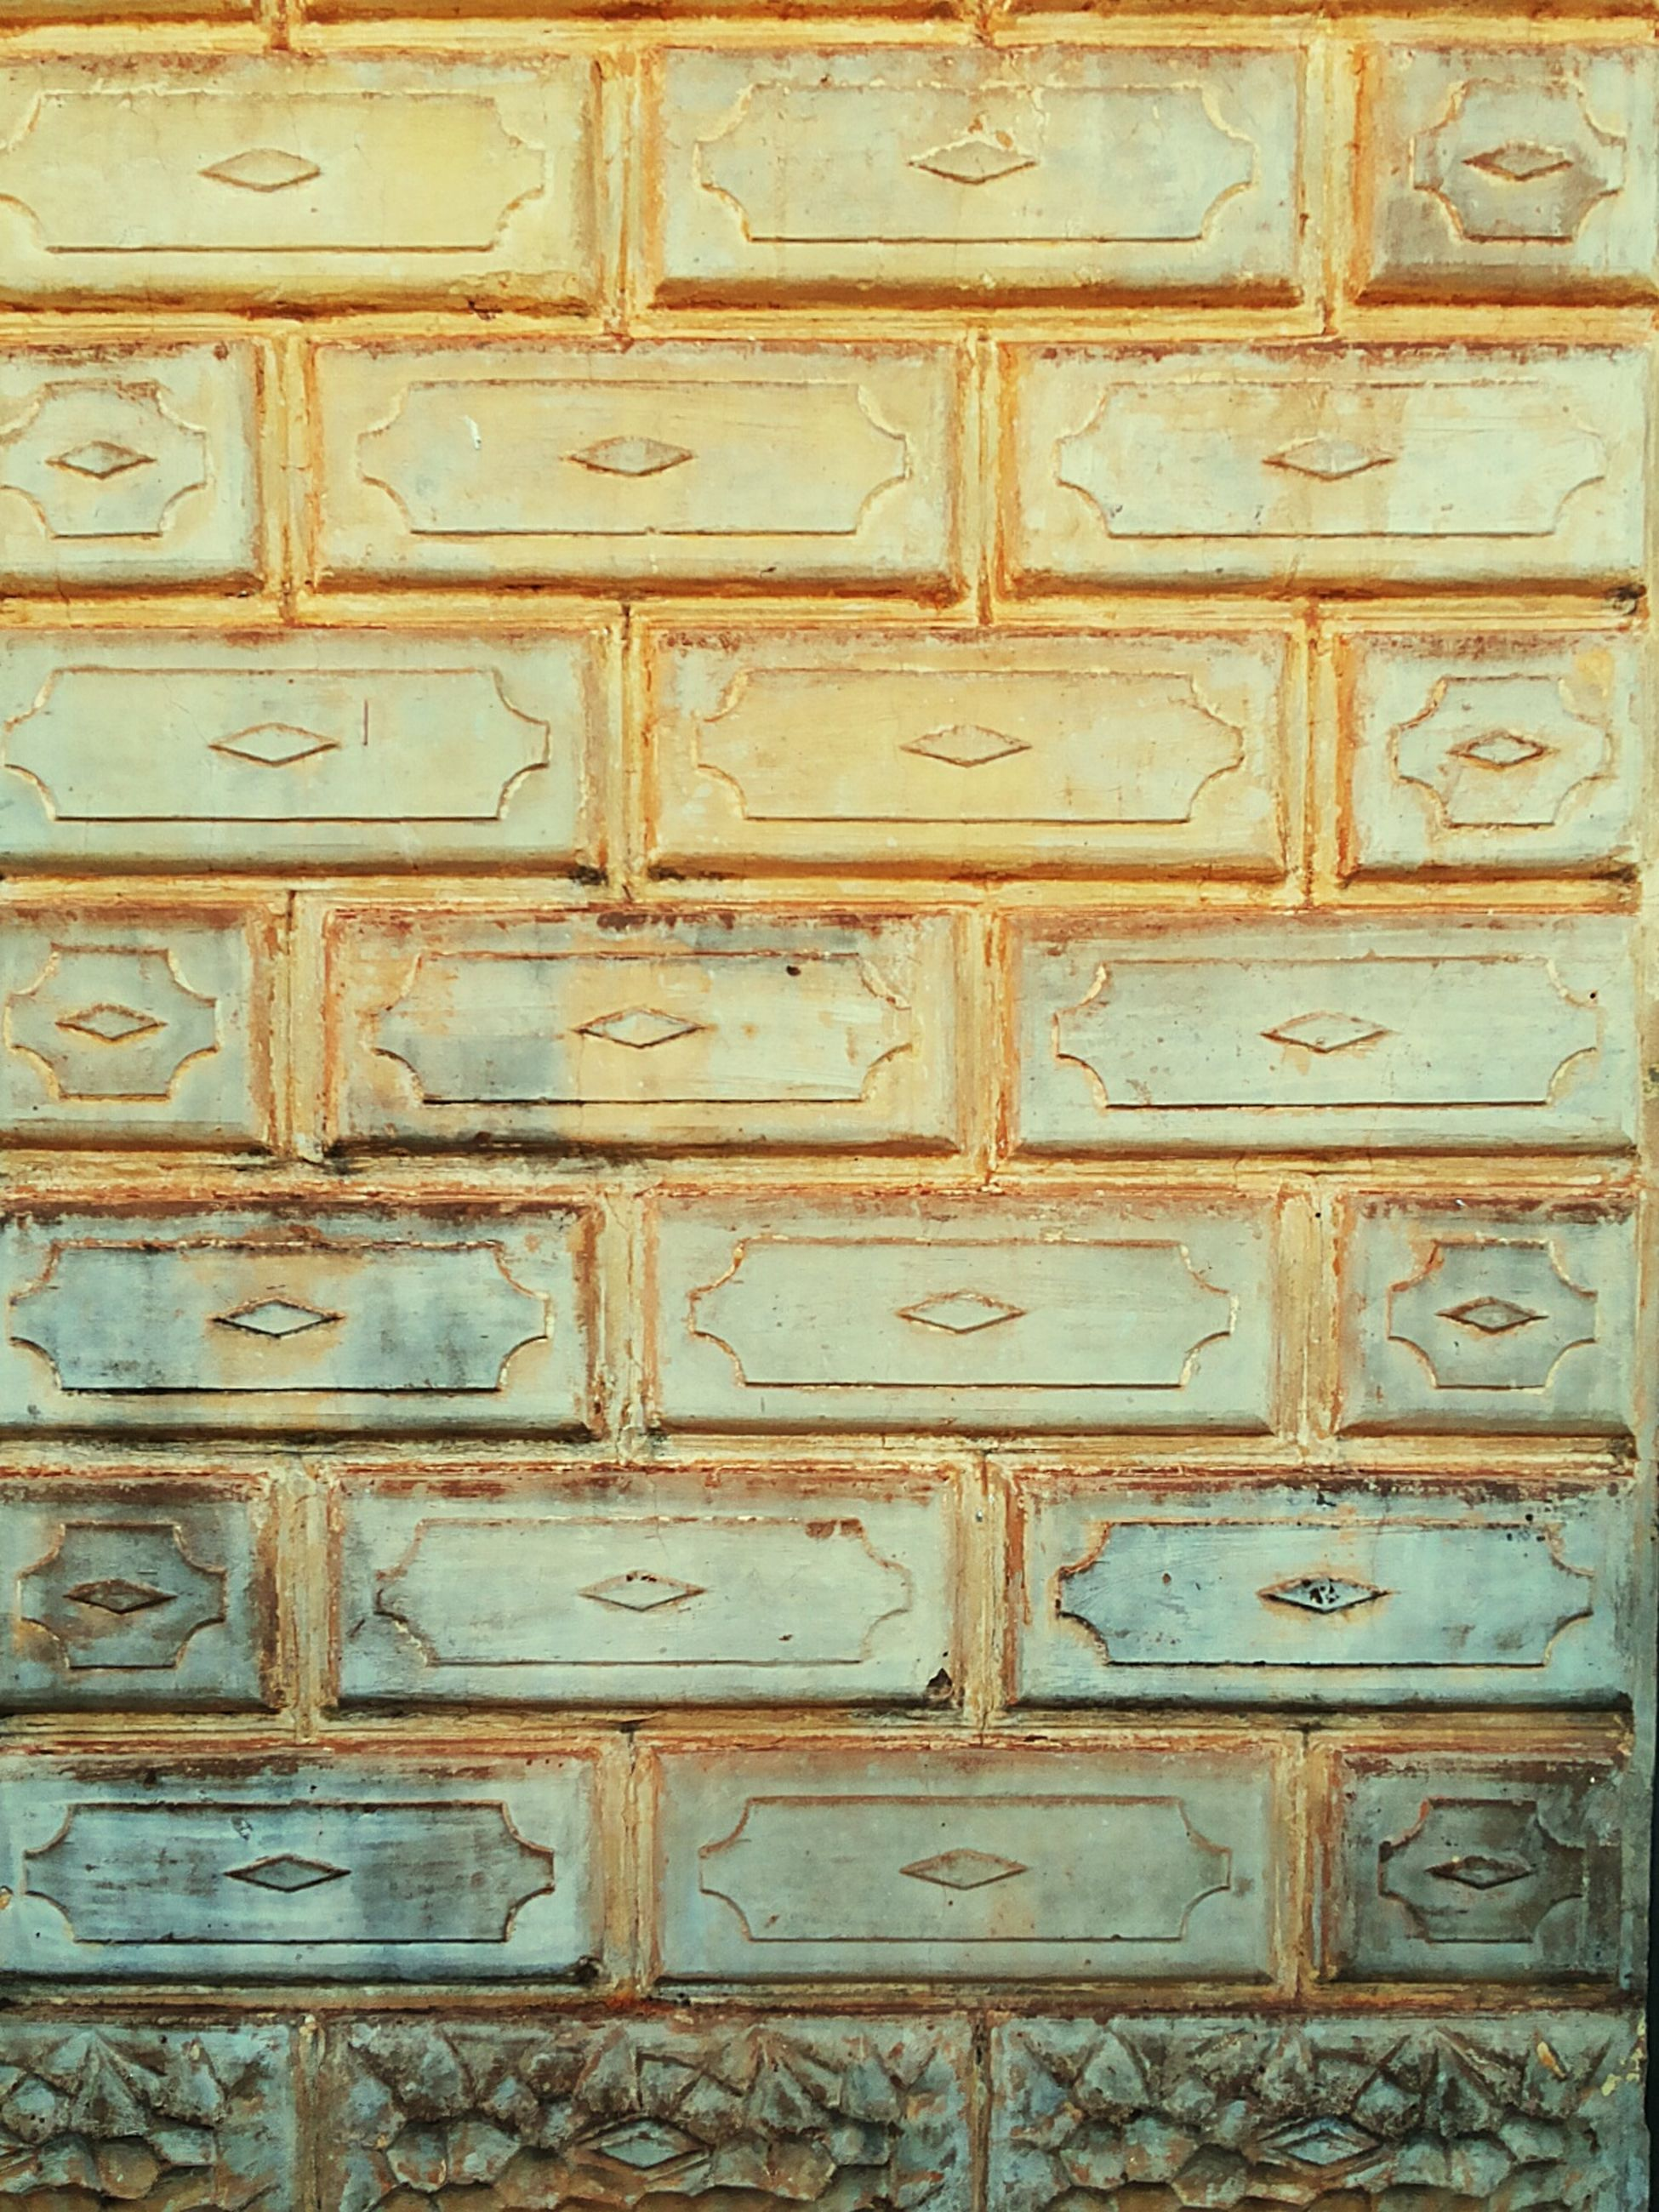 full frame, backgrounds, pattern, textured, door, close-up, built structure, closed, wood - material, architecture, design, protection, safety, detail, wooden, security, building exterior, no people, day, outdoors